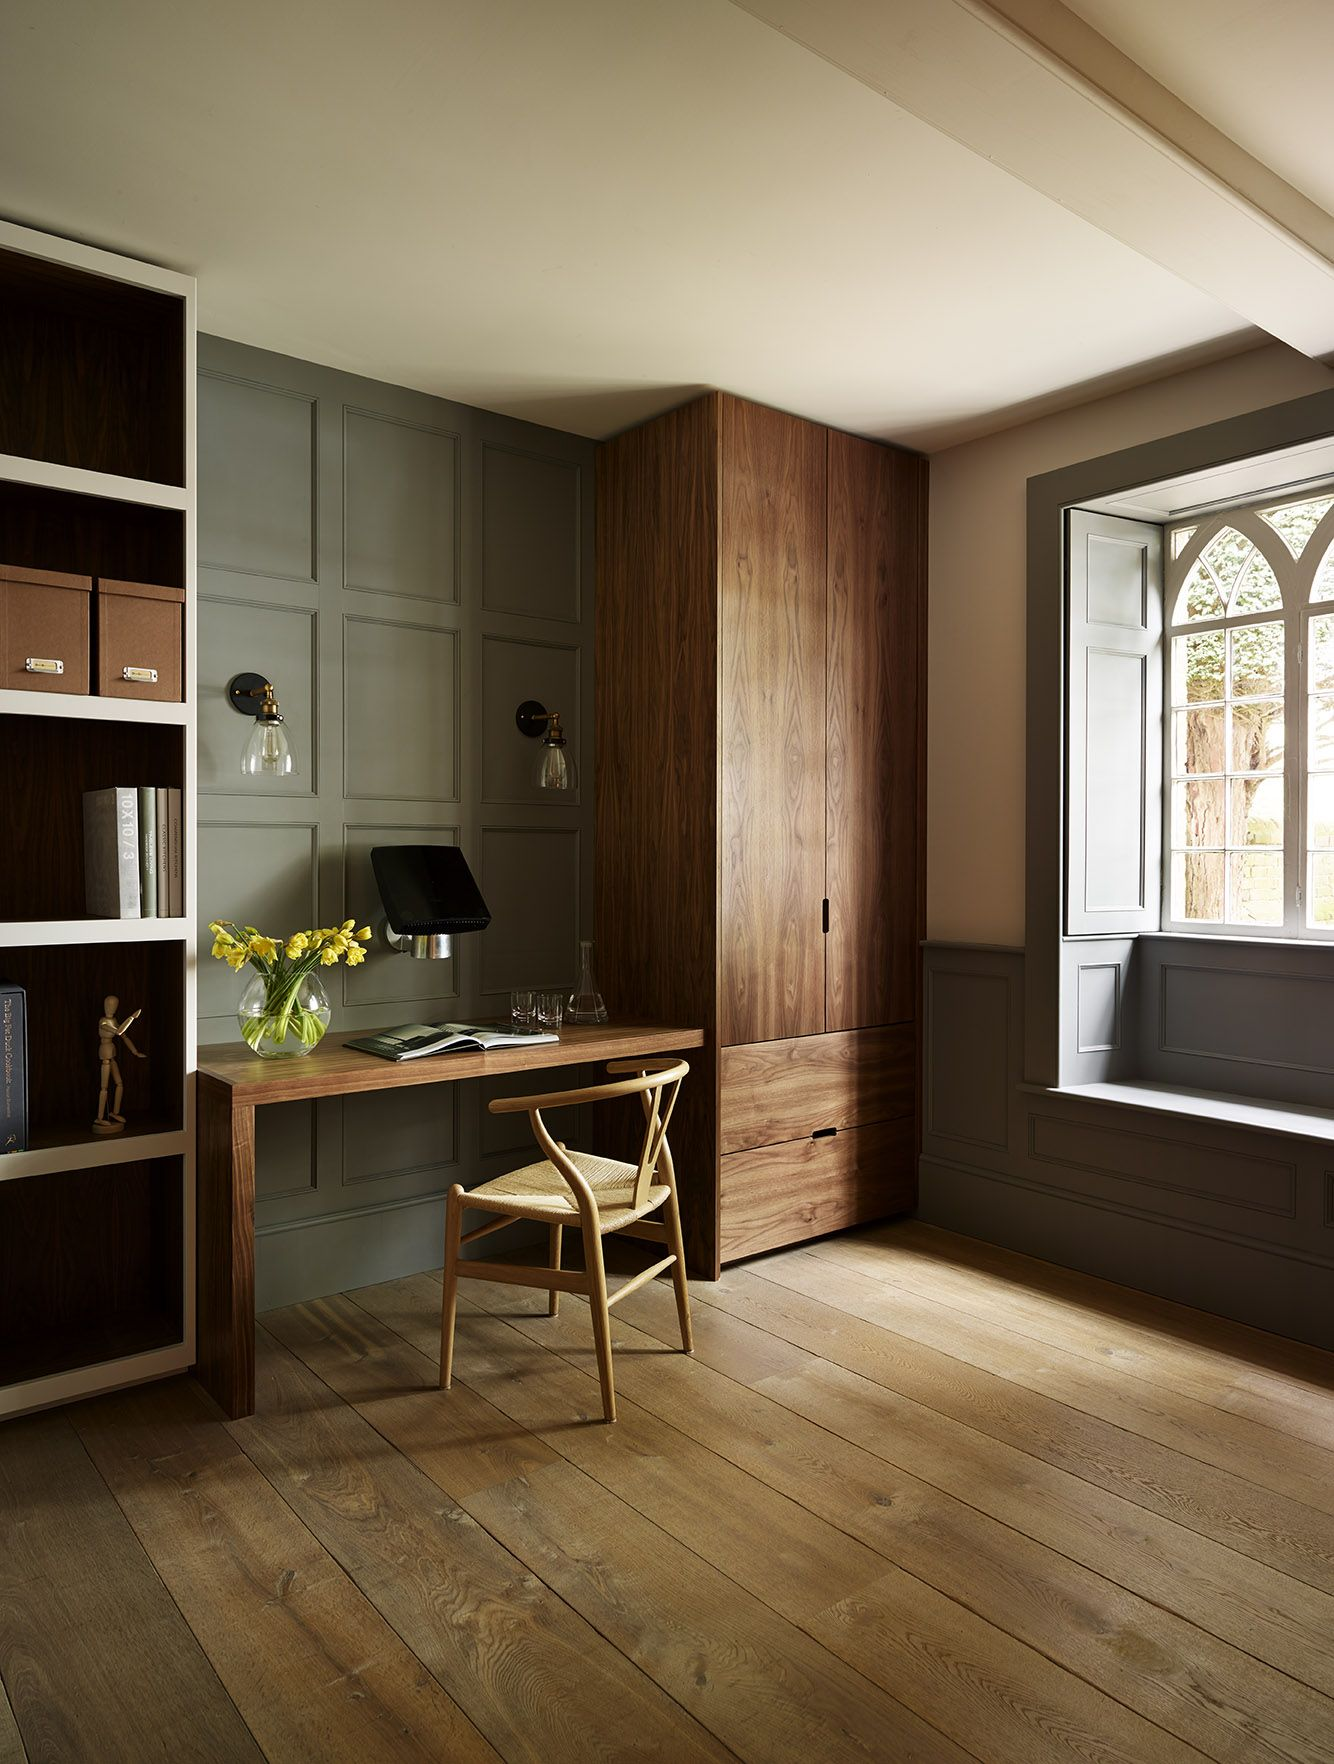 Home Library Furniture: Study And Library Furniture By Teddy Edwards